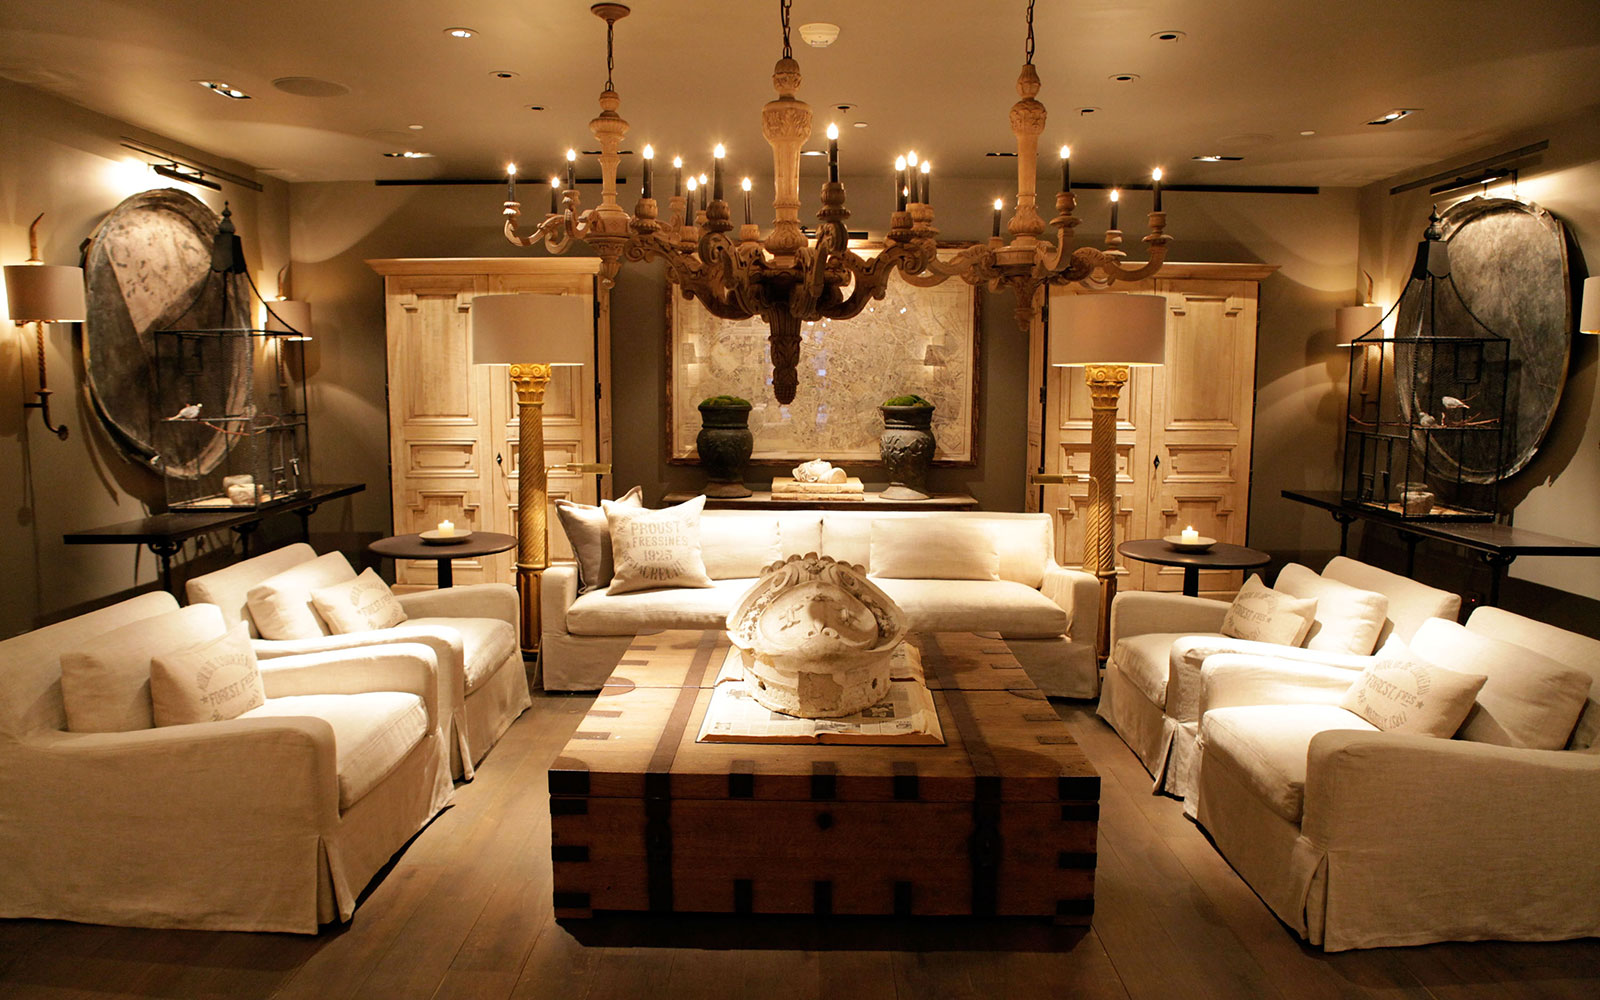 Restoration Hardware is Opening a Hotel in New York City